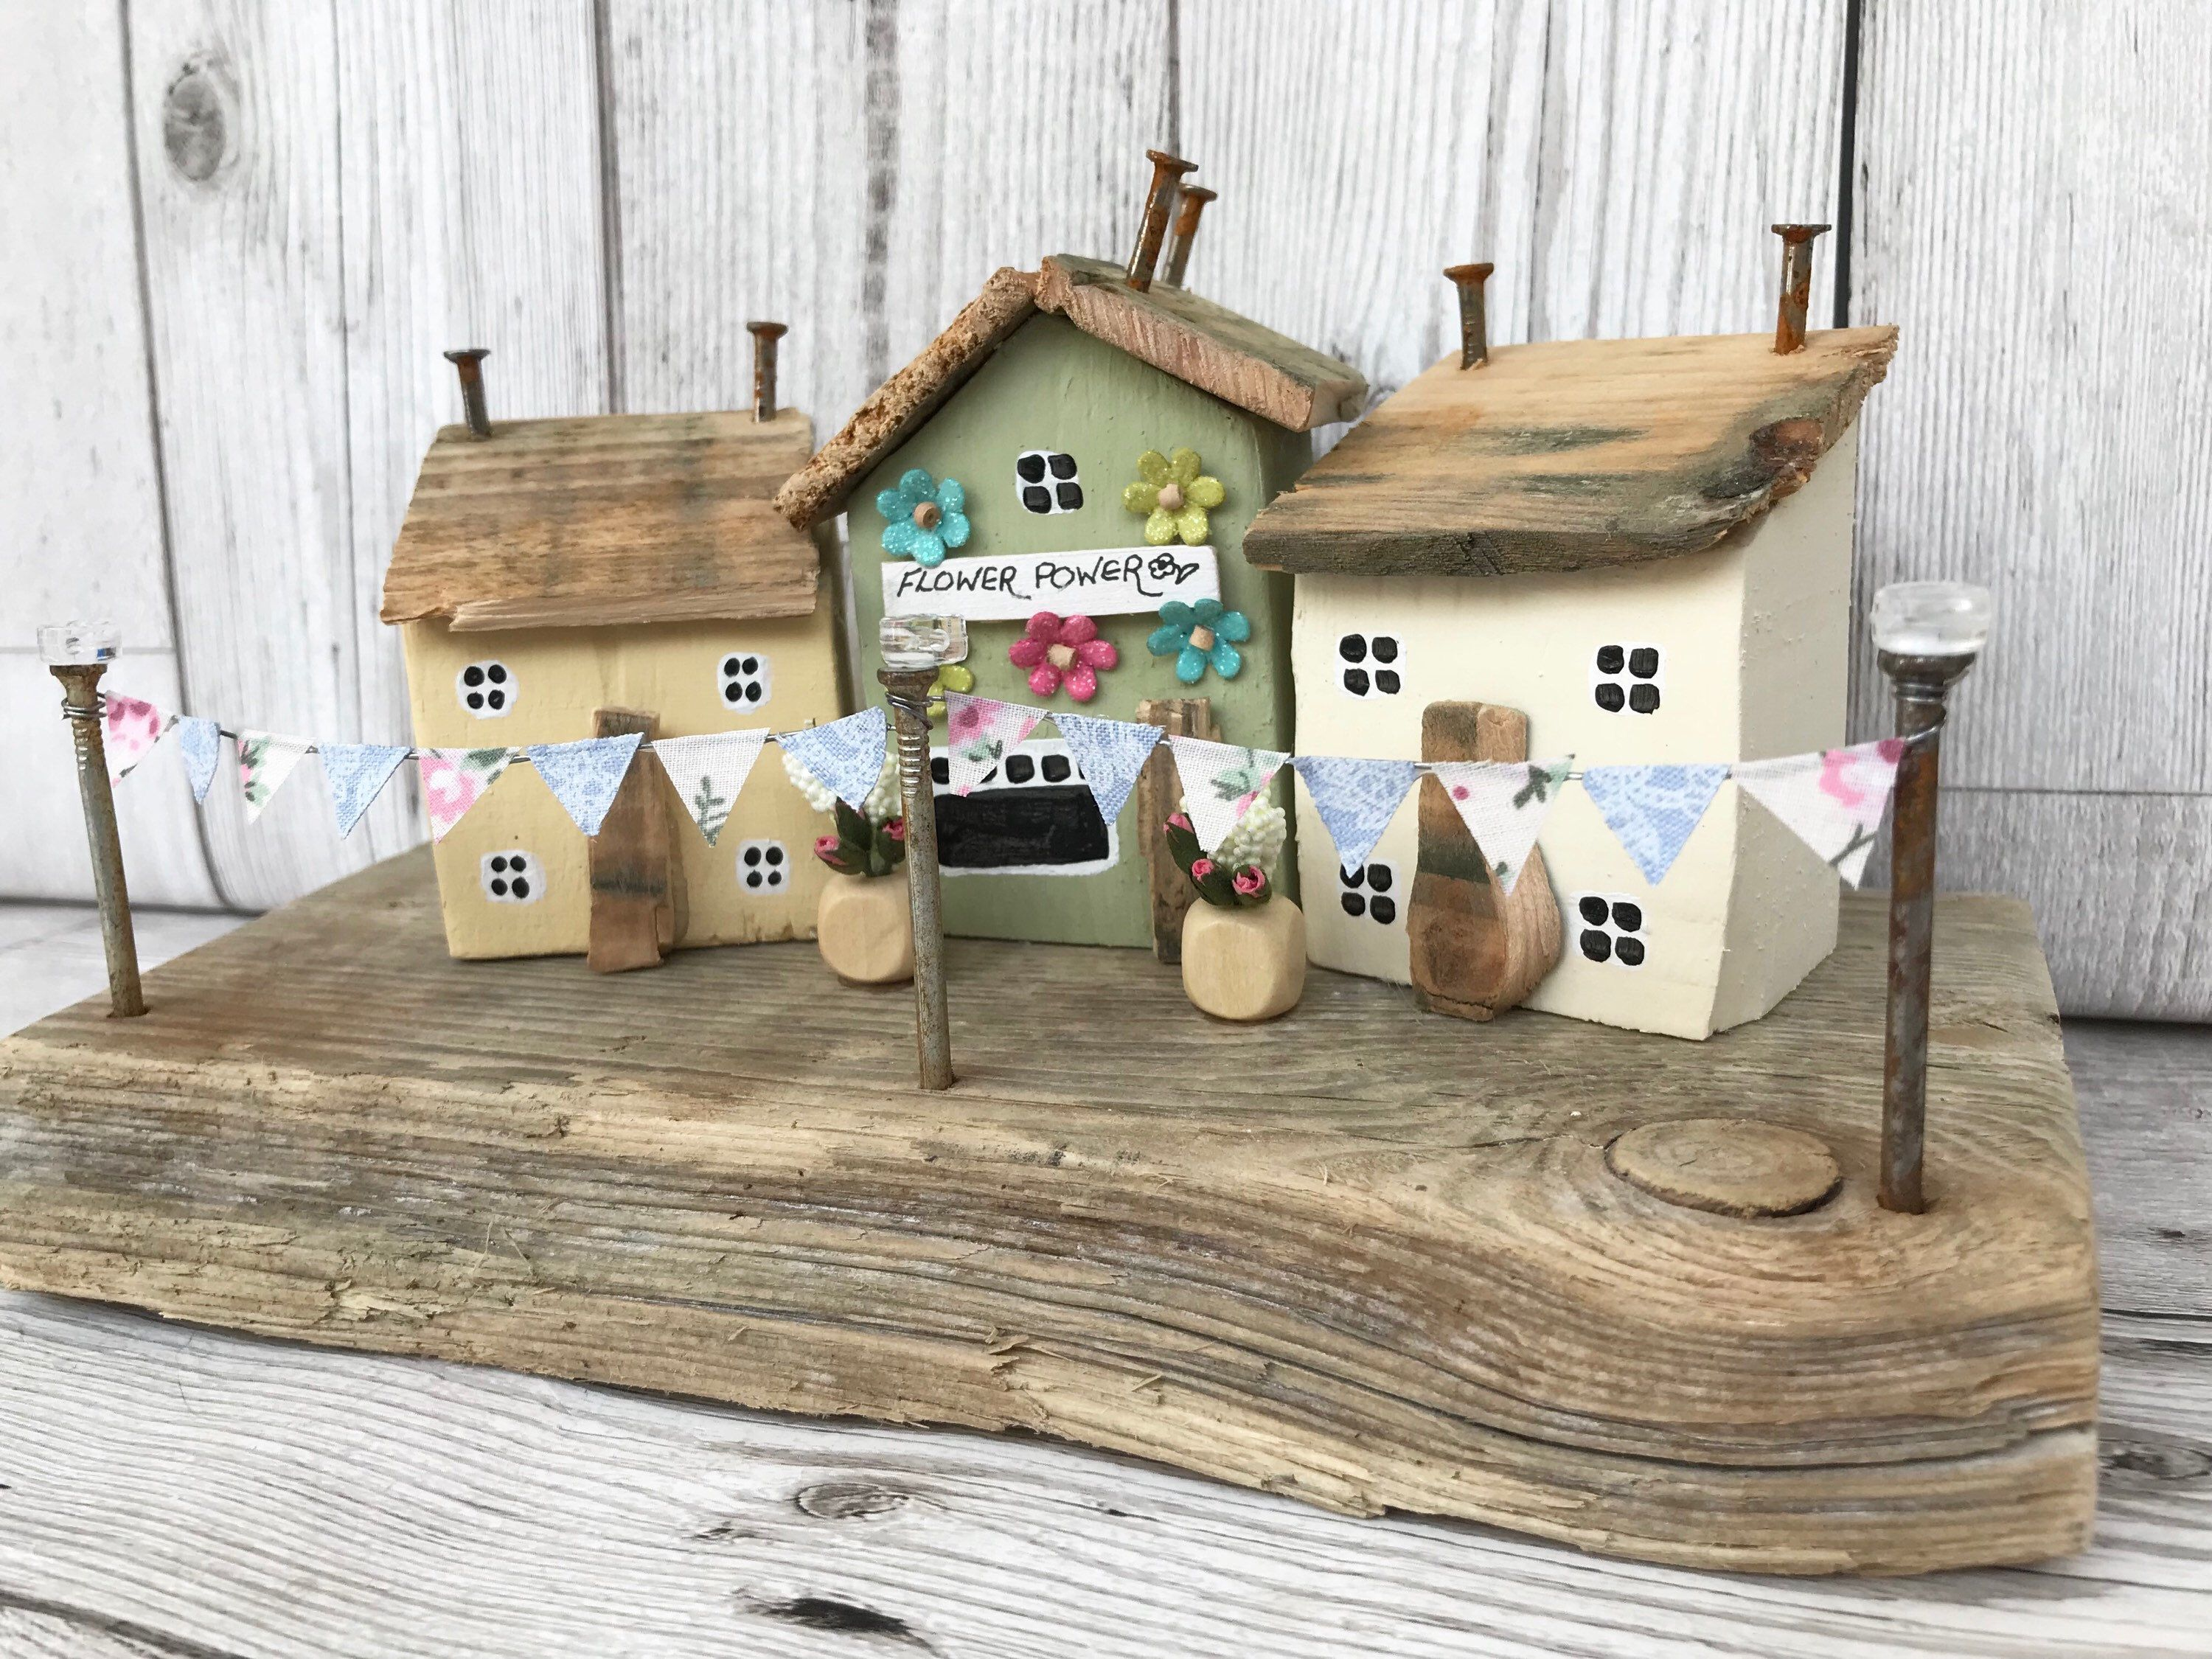 Wooden Houses and Flower Shop, Driftwood Art Cottage Chic Decor Housewarming gift Retirement Gift for Her Diorama Gift for Mum Wood Art